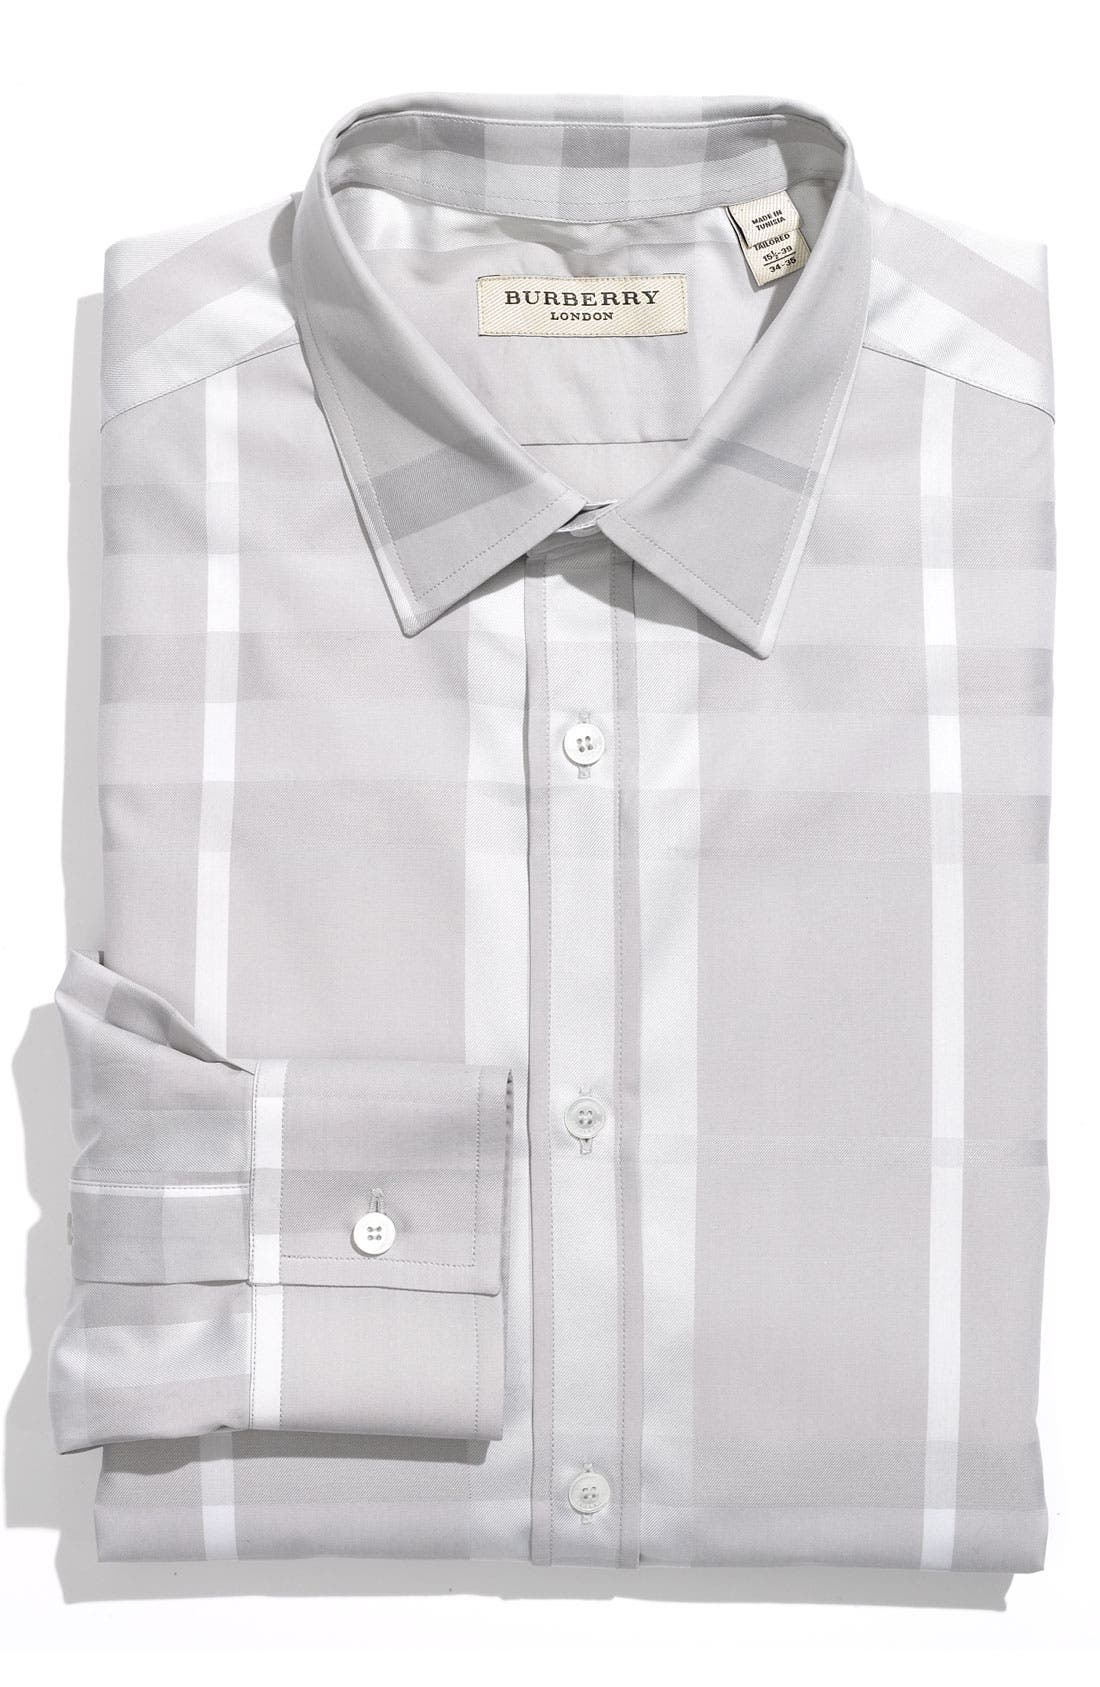 Alternate Image 1 Selected - Burberry London Tailored Fit Dress Shirt